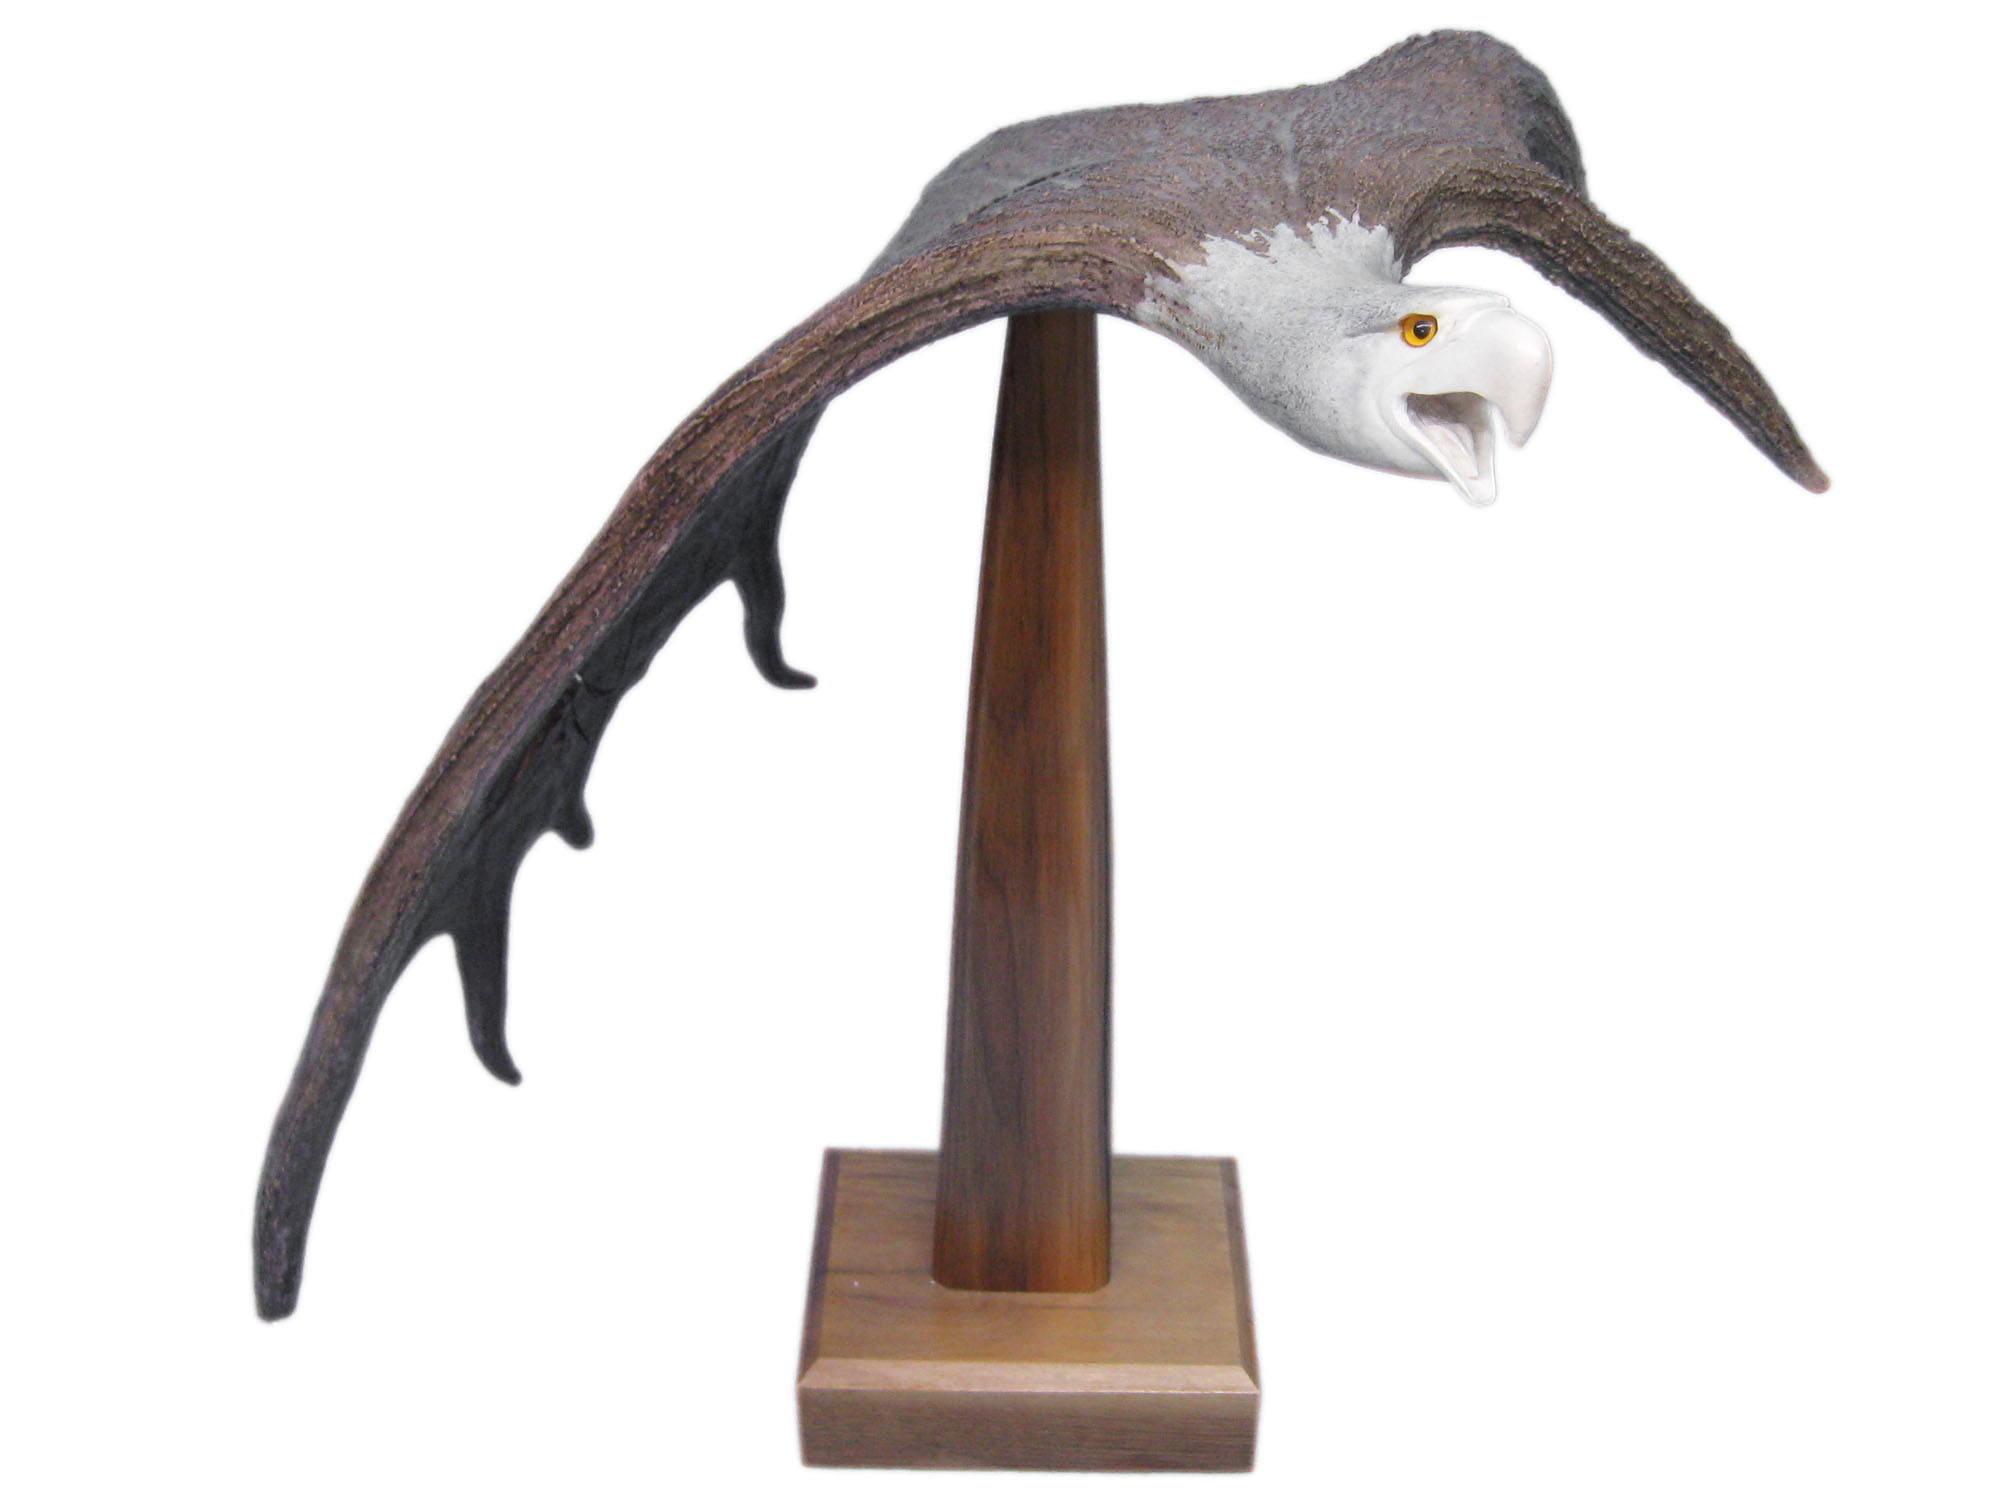 Iroquois Moose Antler Carving: Gallery Item